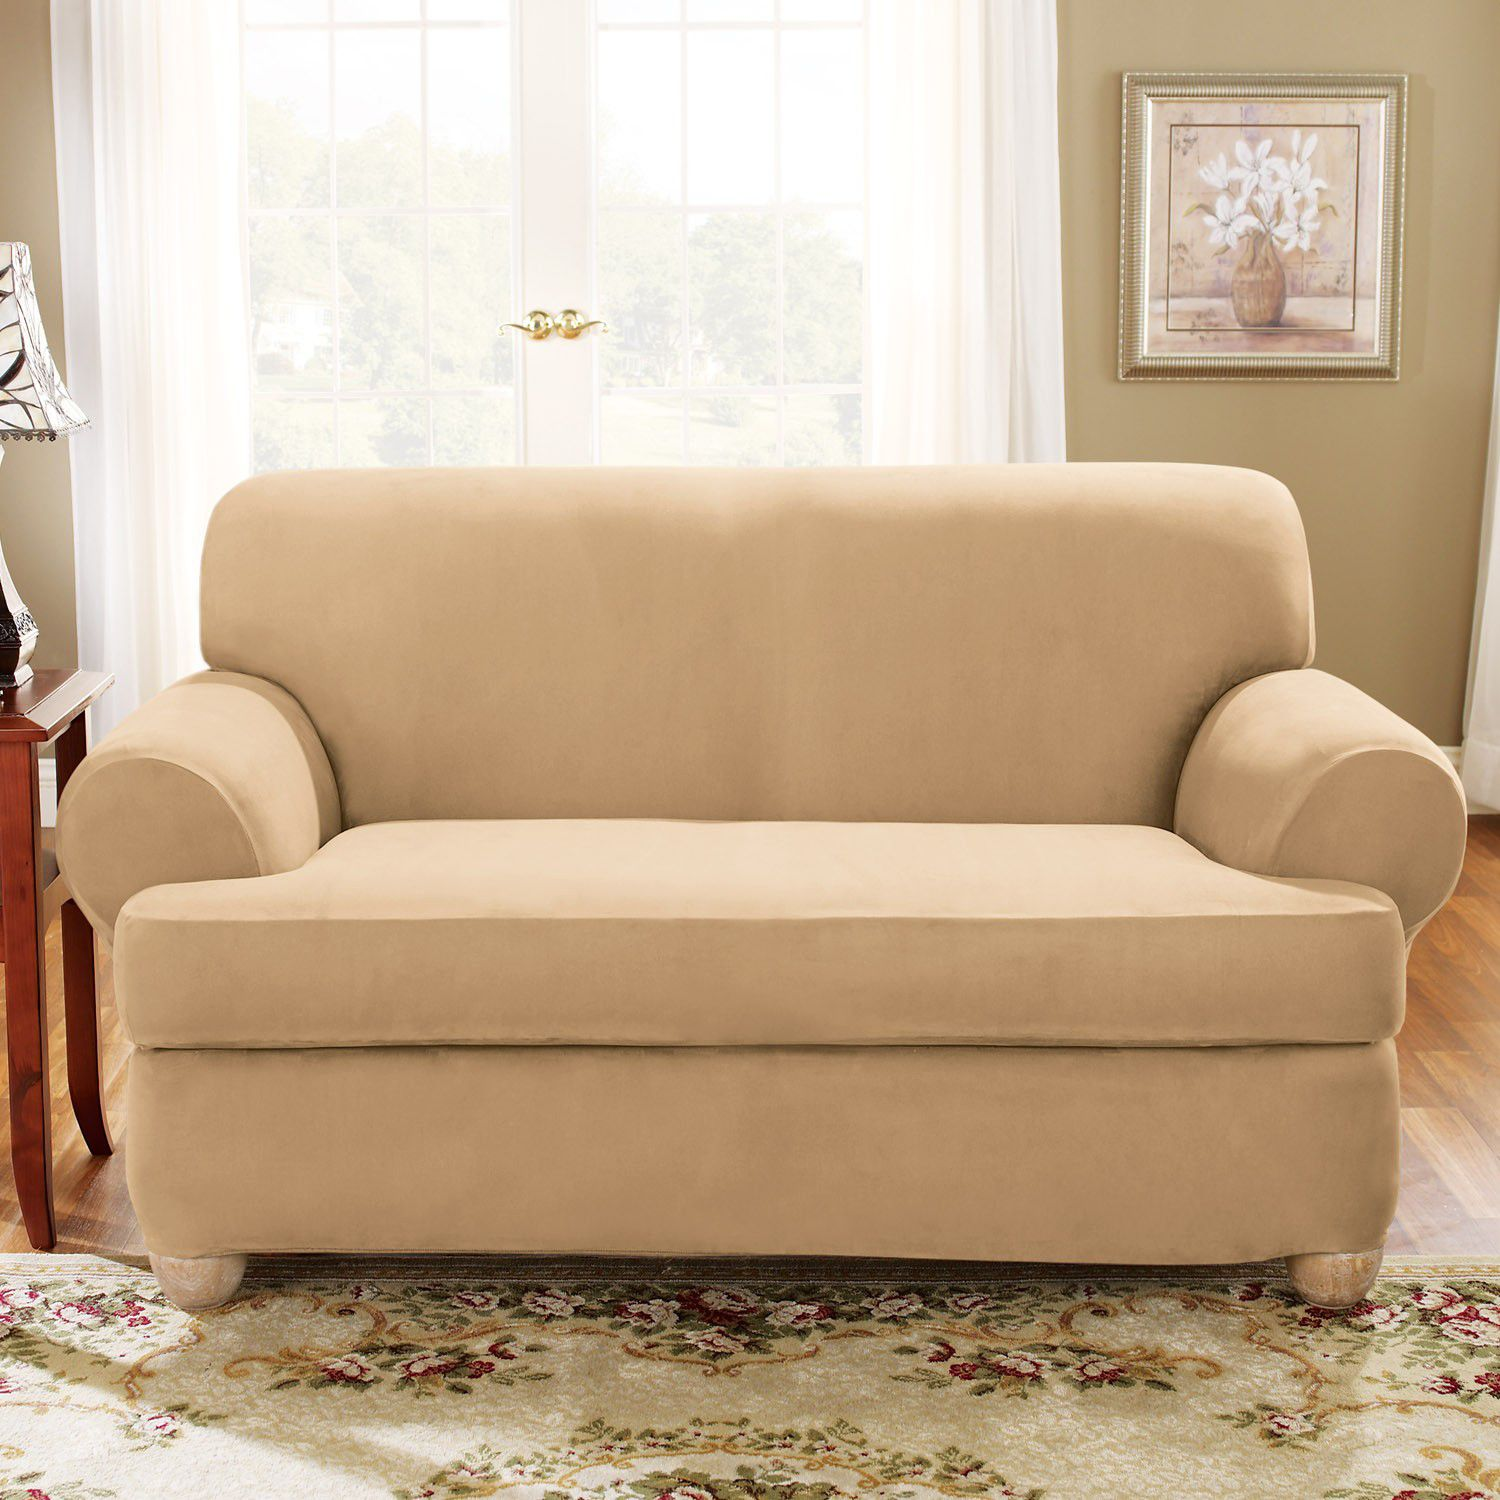 Sure Fit Chair Slipcovers Sure Fit Slipcovers Cotton Duck 1piece